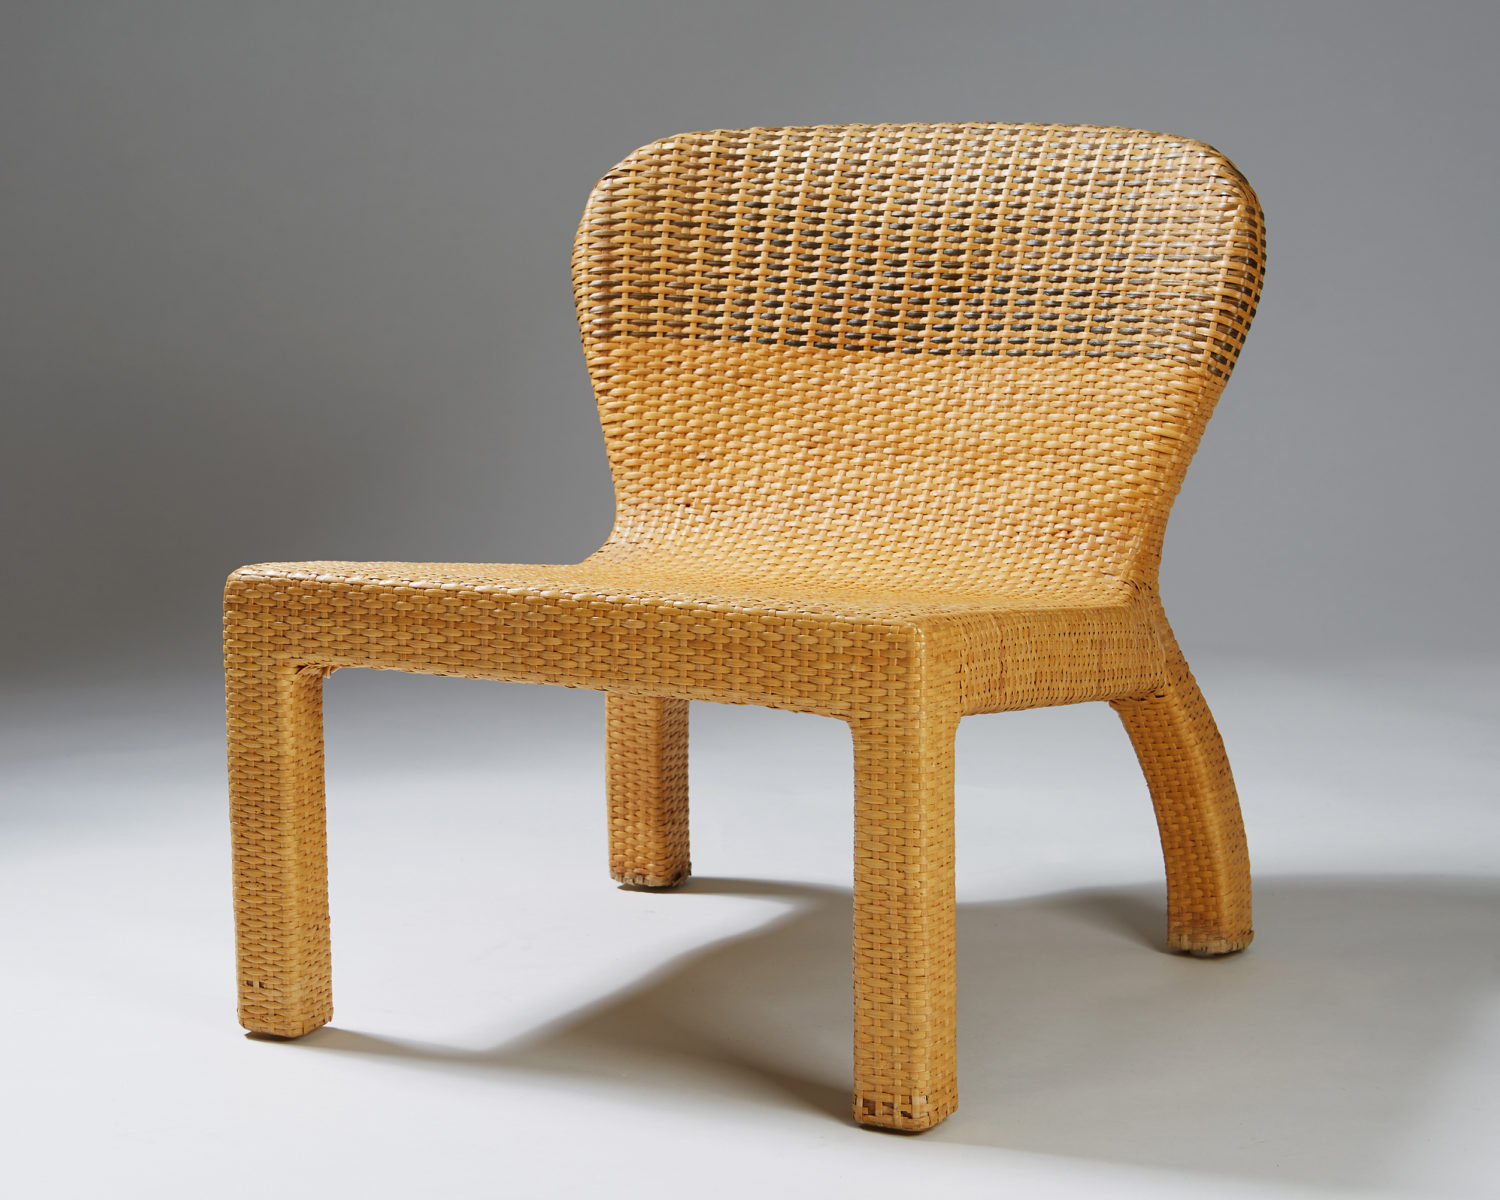 Chair Ikea PS designed by Thomas Sandell for Ikea, — Modernity